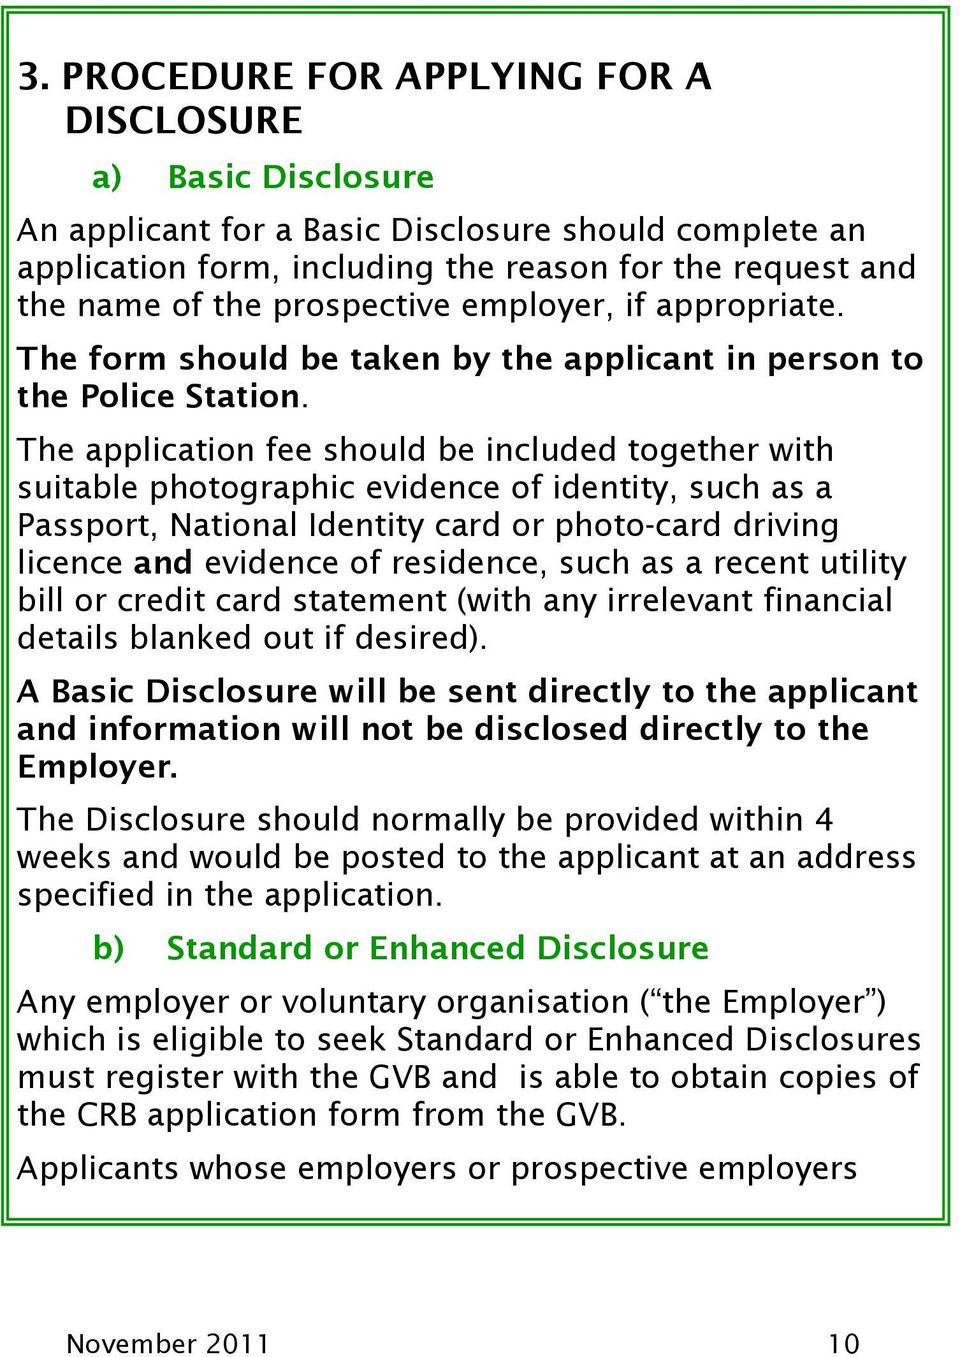 The application fee should be included together with suitable photographic evidence of identity, such as a Passport, National Identity card or photo-card driving licence and evidence of residence,